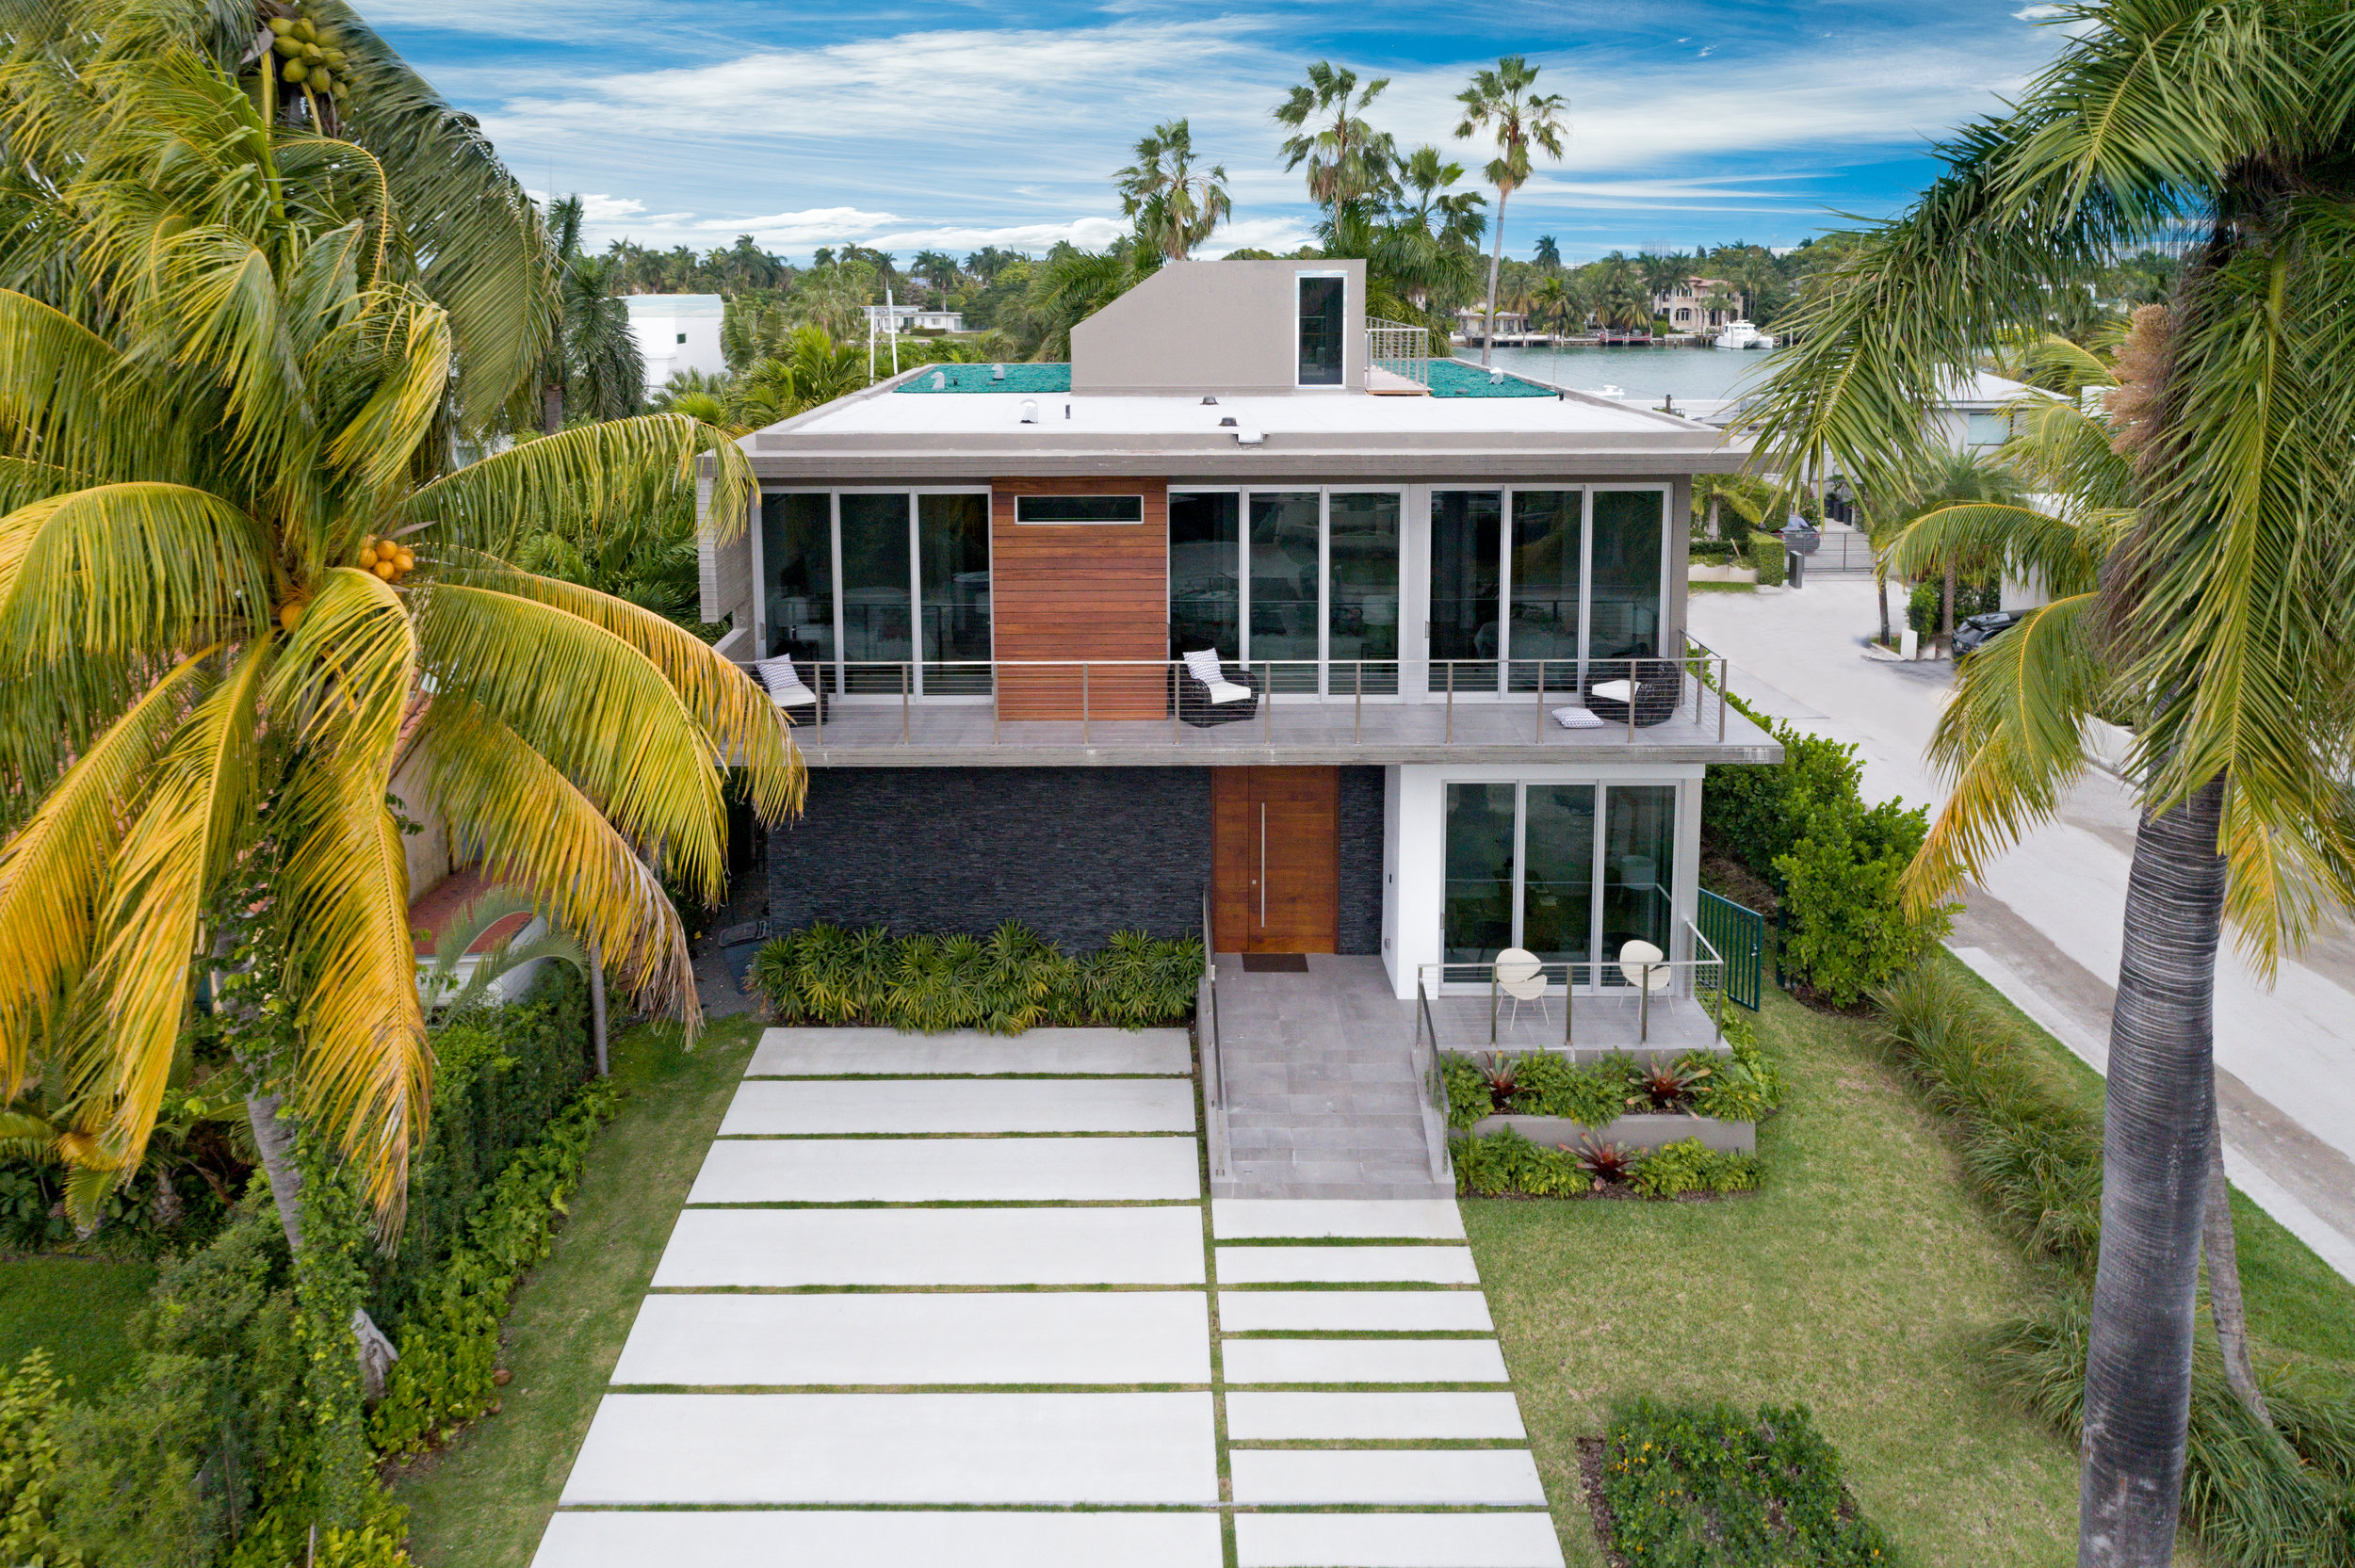 Tour The Palm Island Contemporary Which is The First To Close on Palm Island in 2017